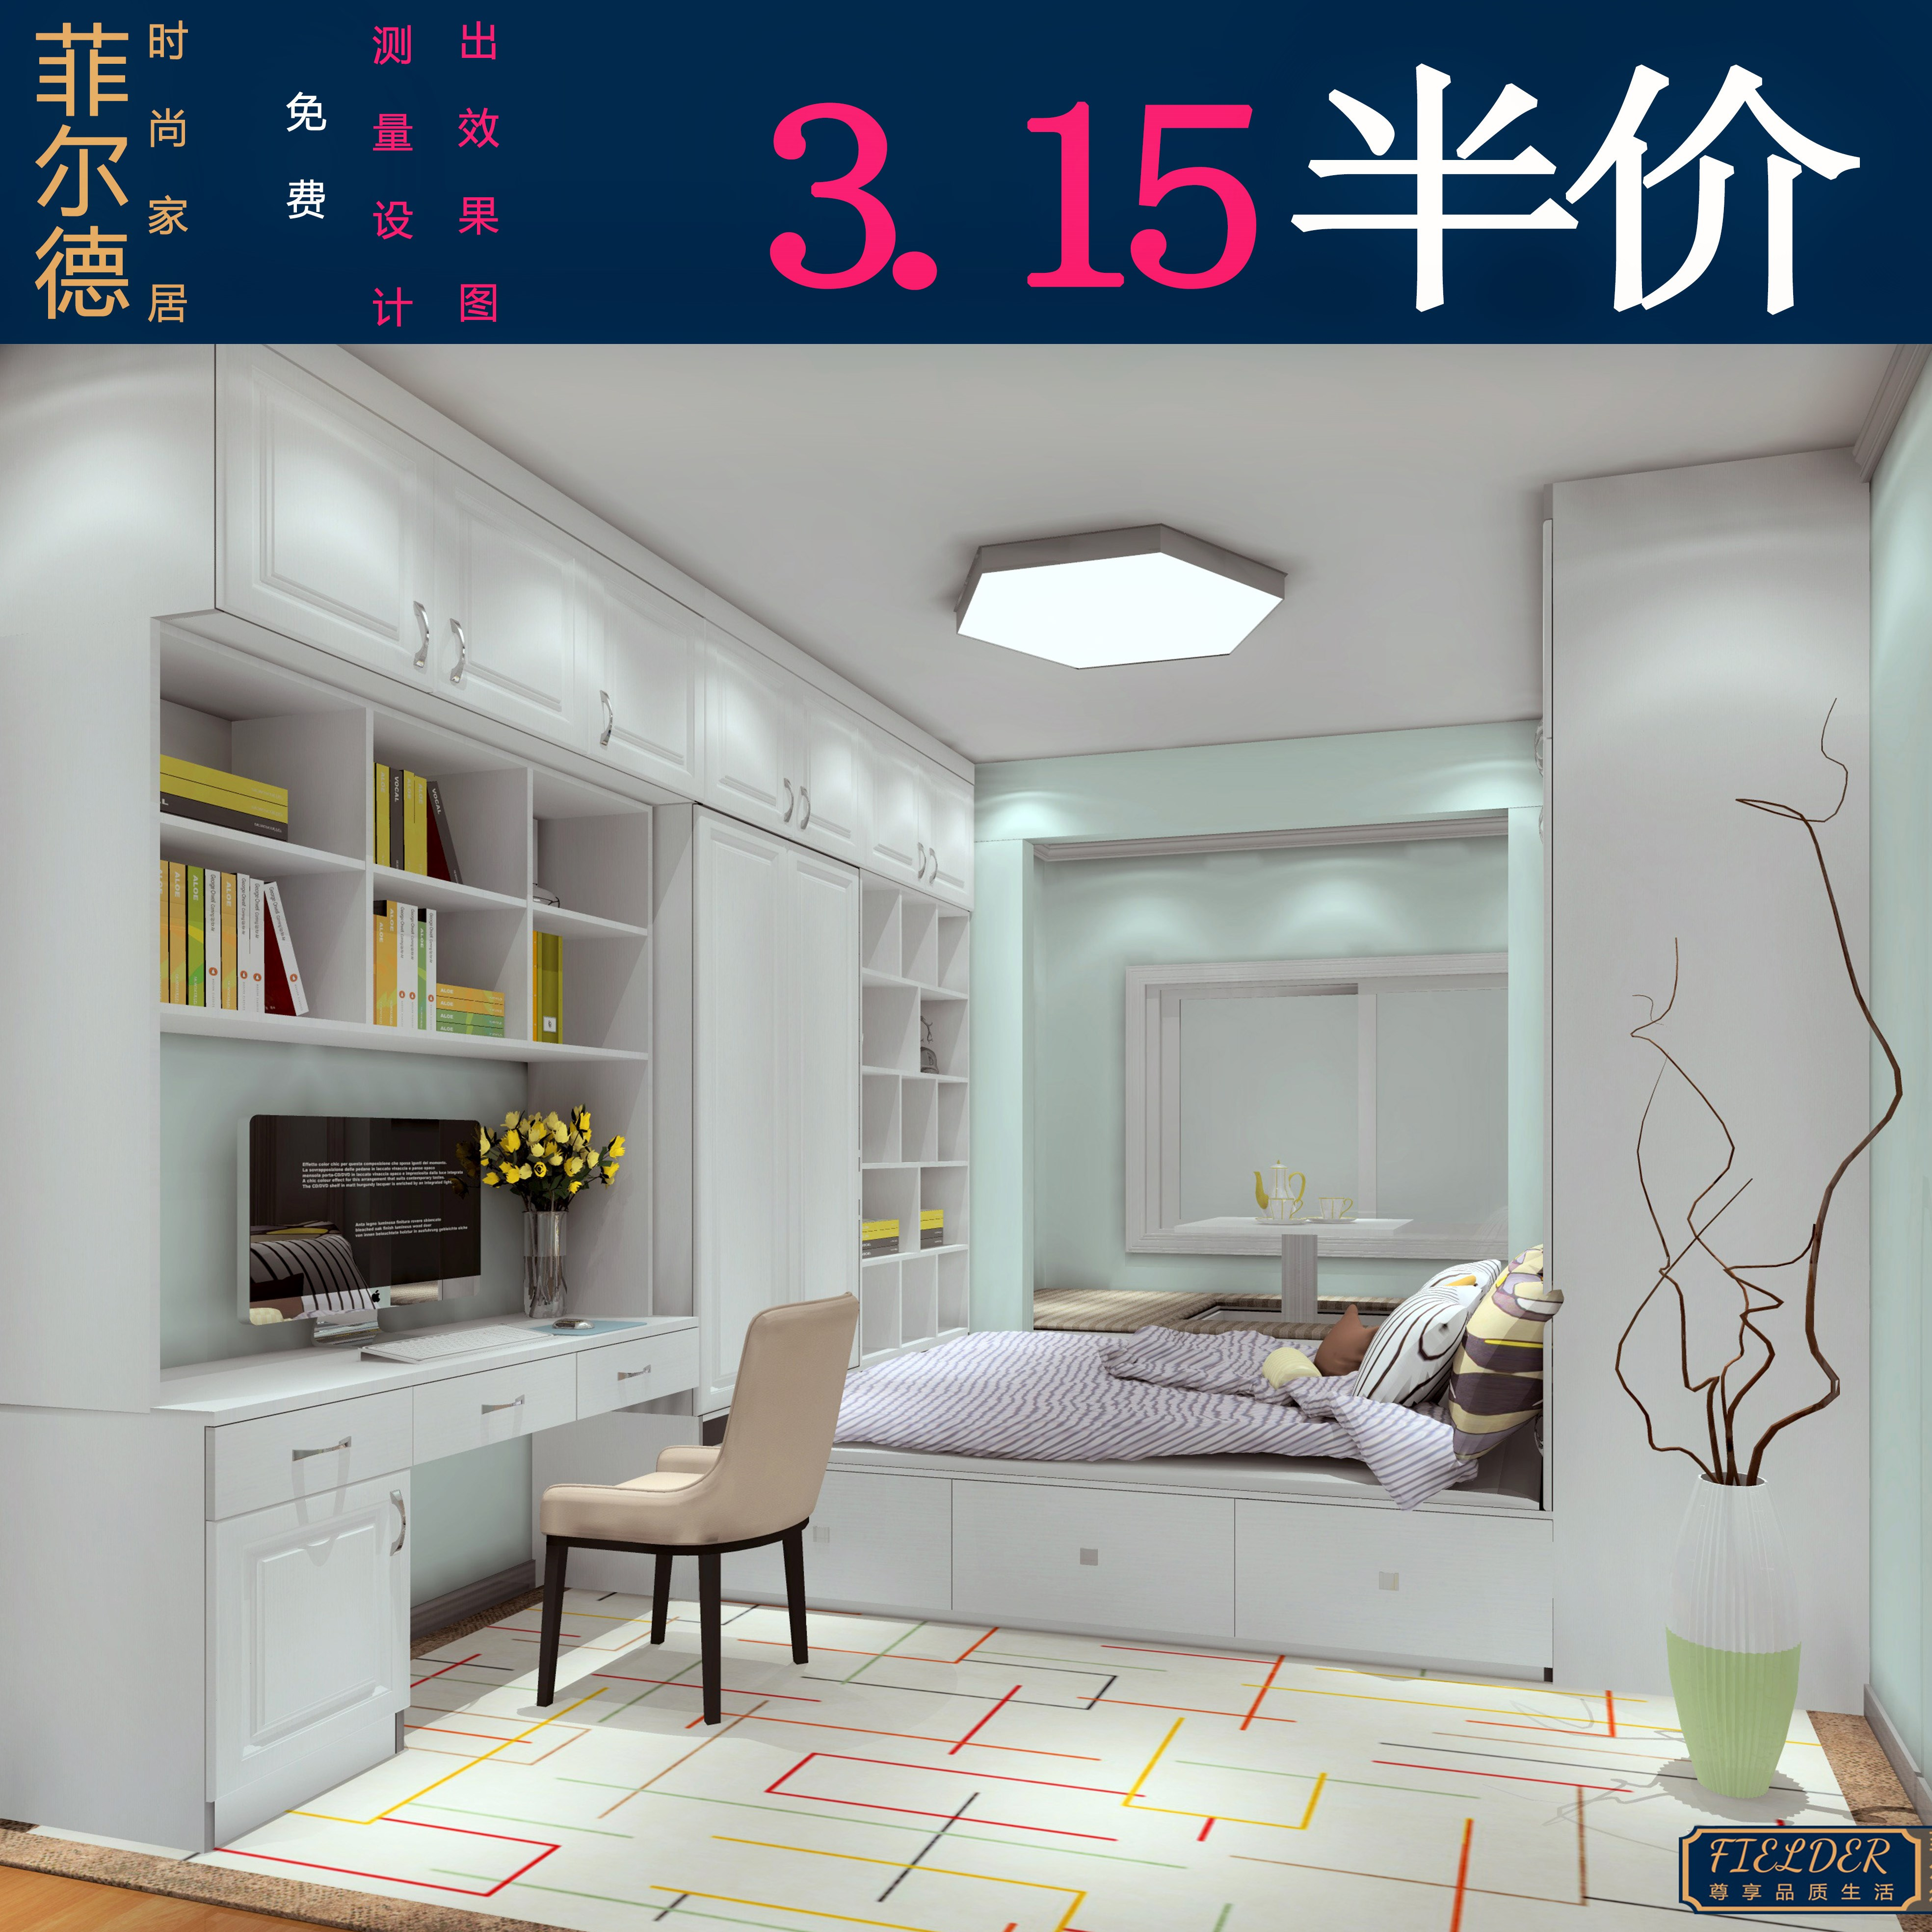 Beijing tatami bed storage platform bedroom windows Library Children's room furniture custom custom wardrobe